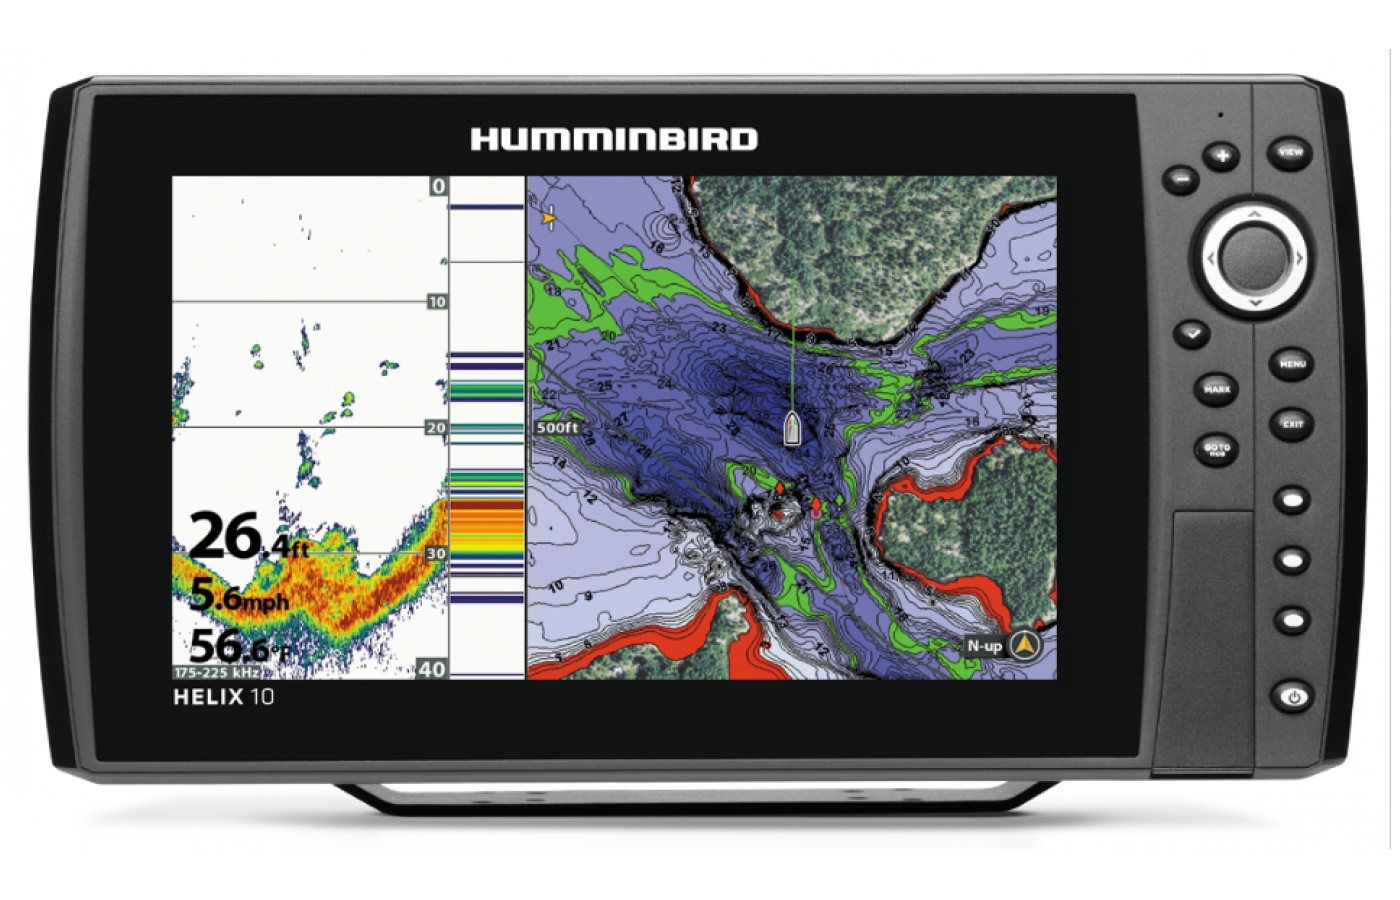 Humminbird HELIX 9 has an automap GPS that lets you track and set waypoints.